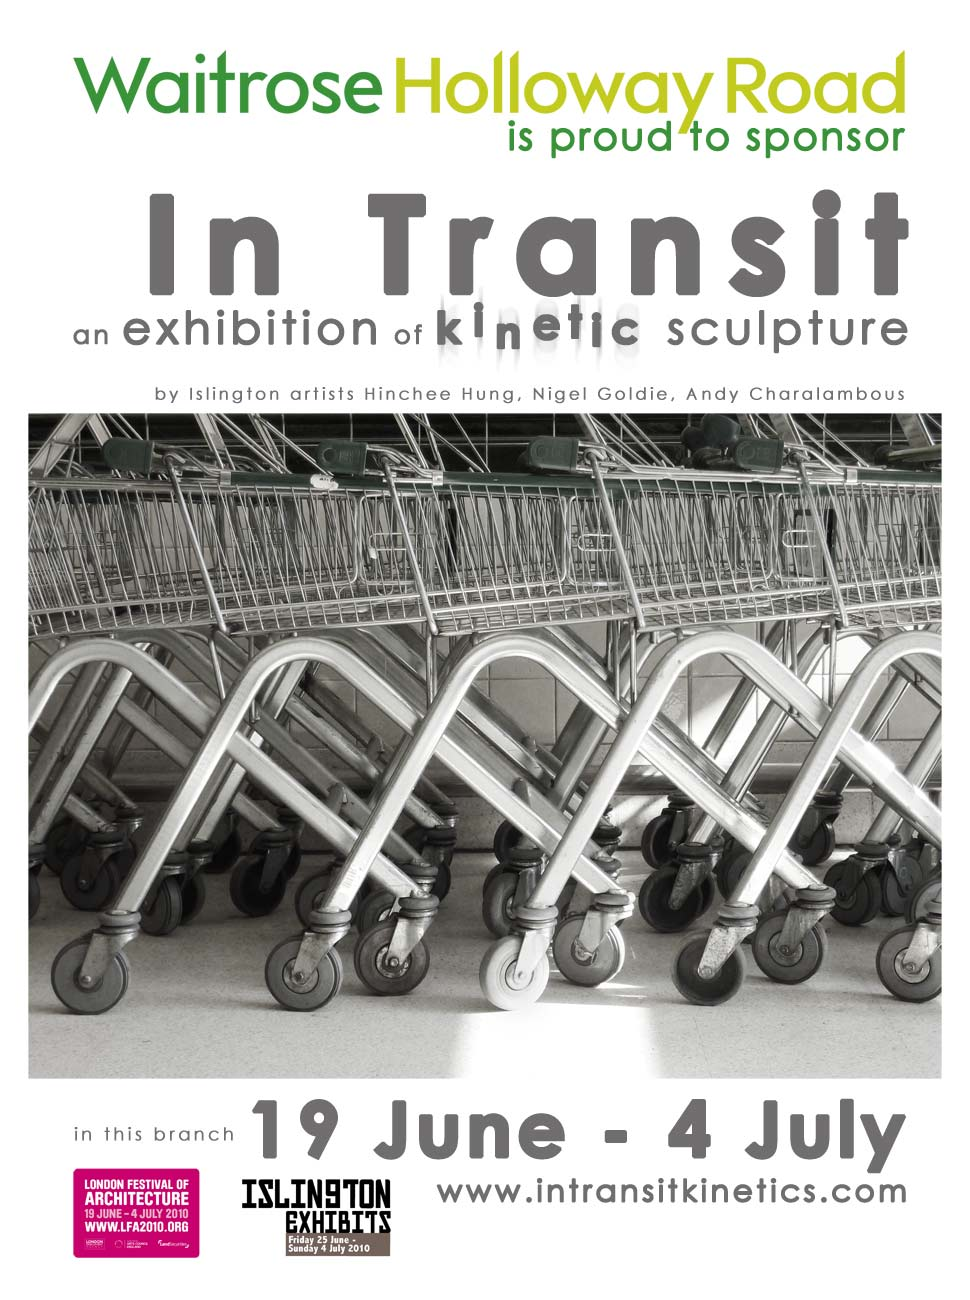 In-transit-kinetic-exhibition